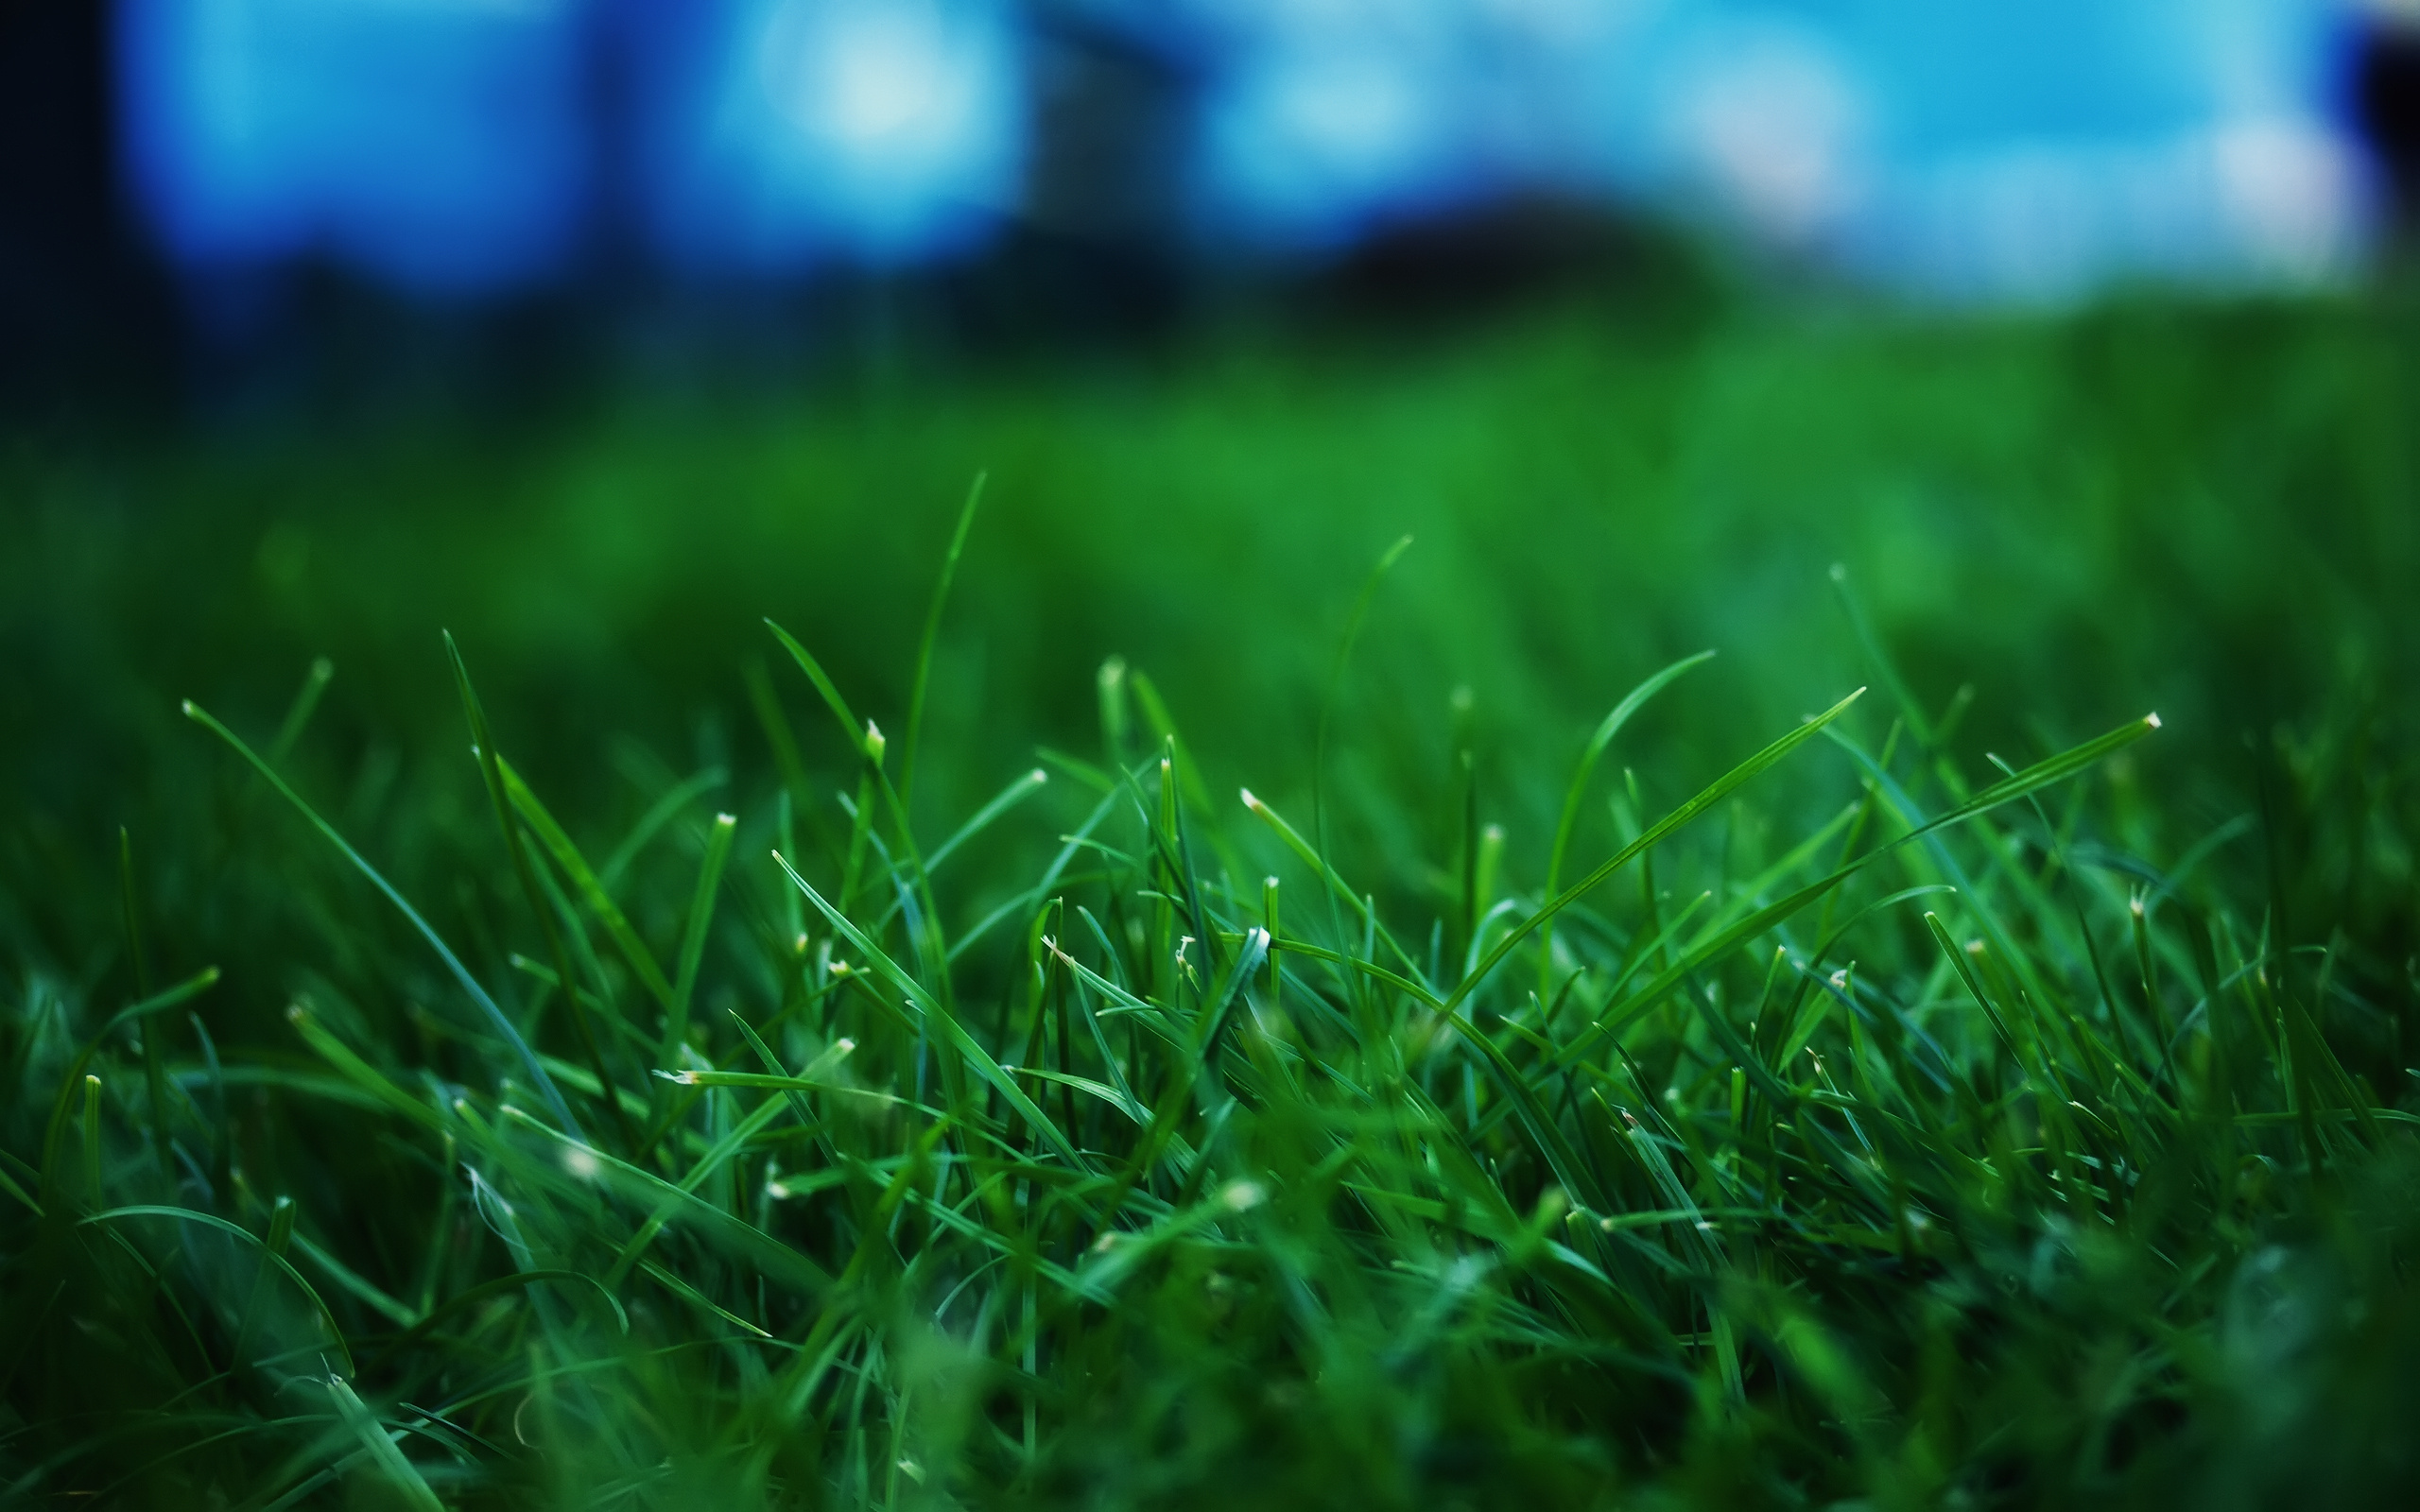 grass pictures cute